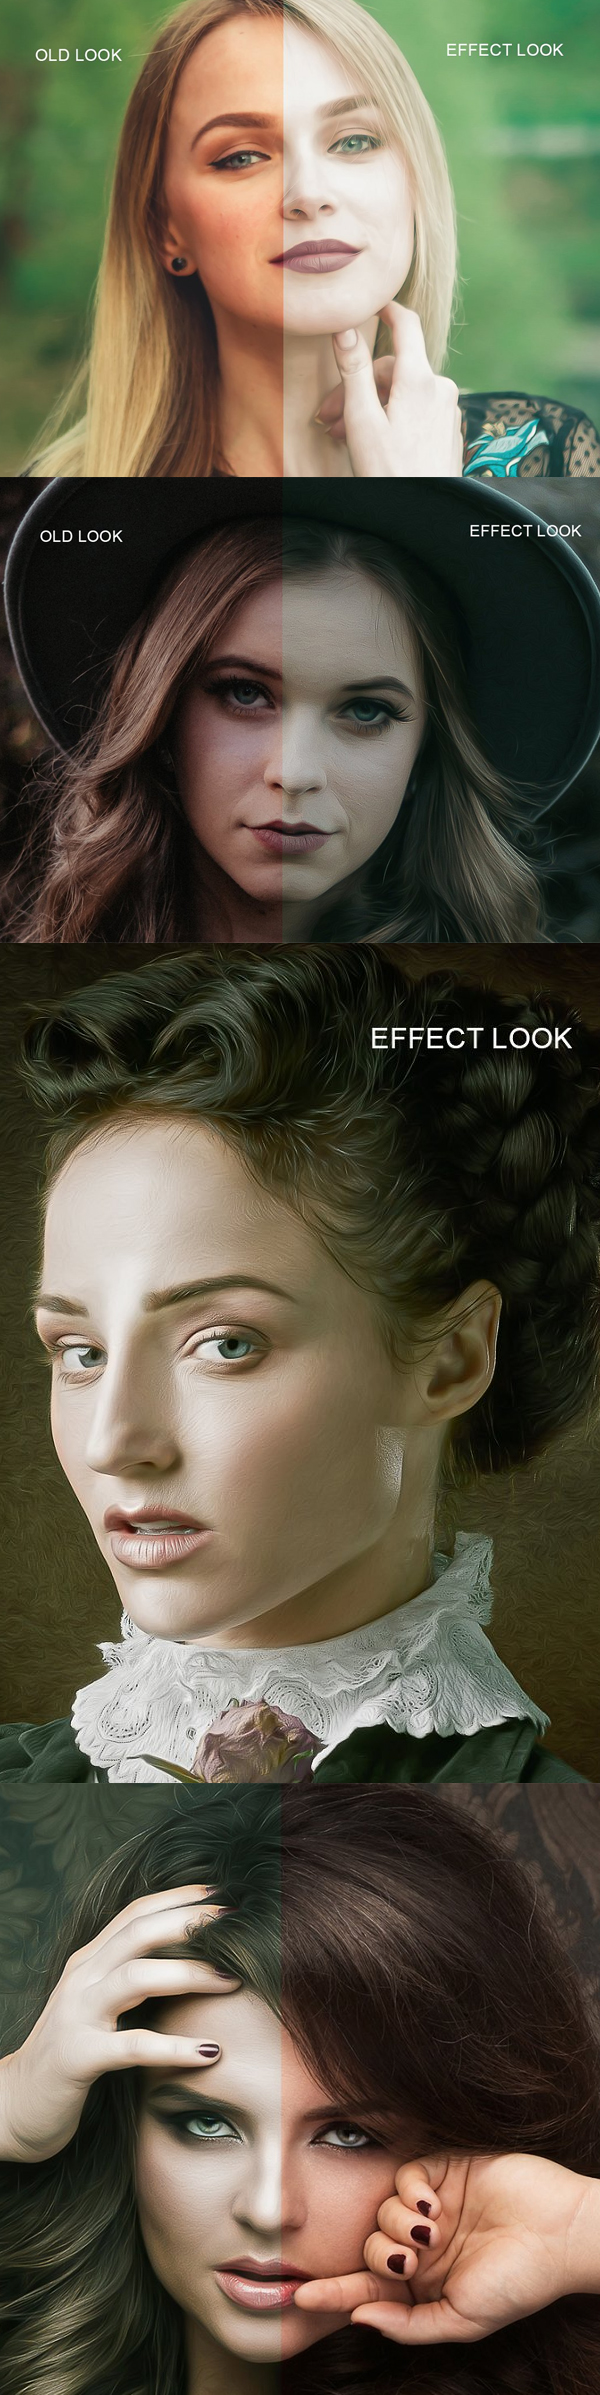 Pro Glamour Girl Effect Photoshop Action